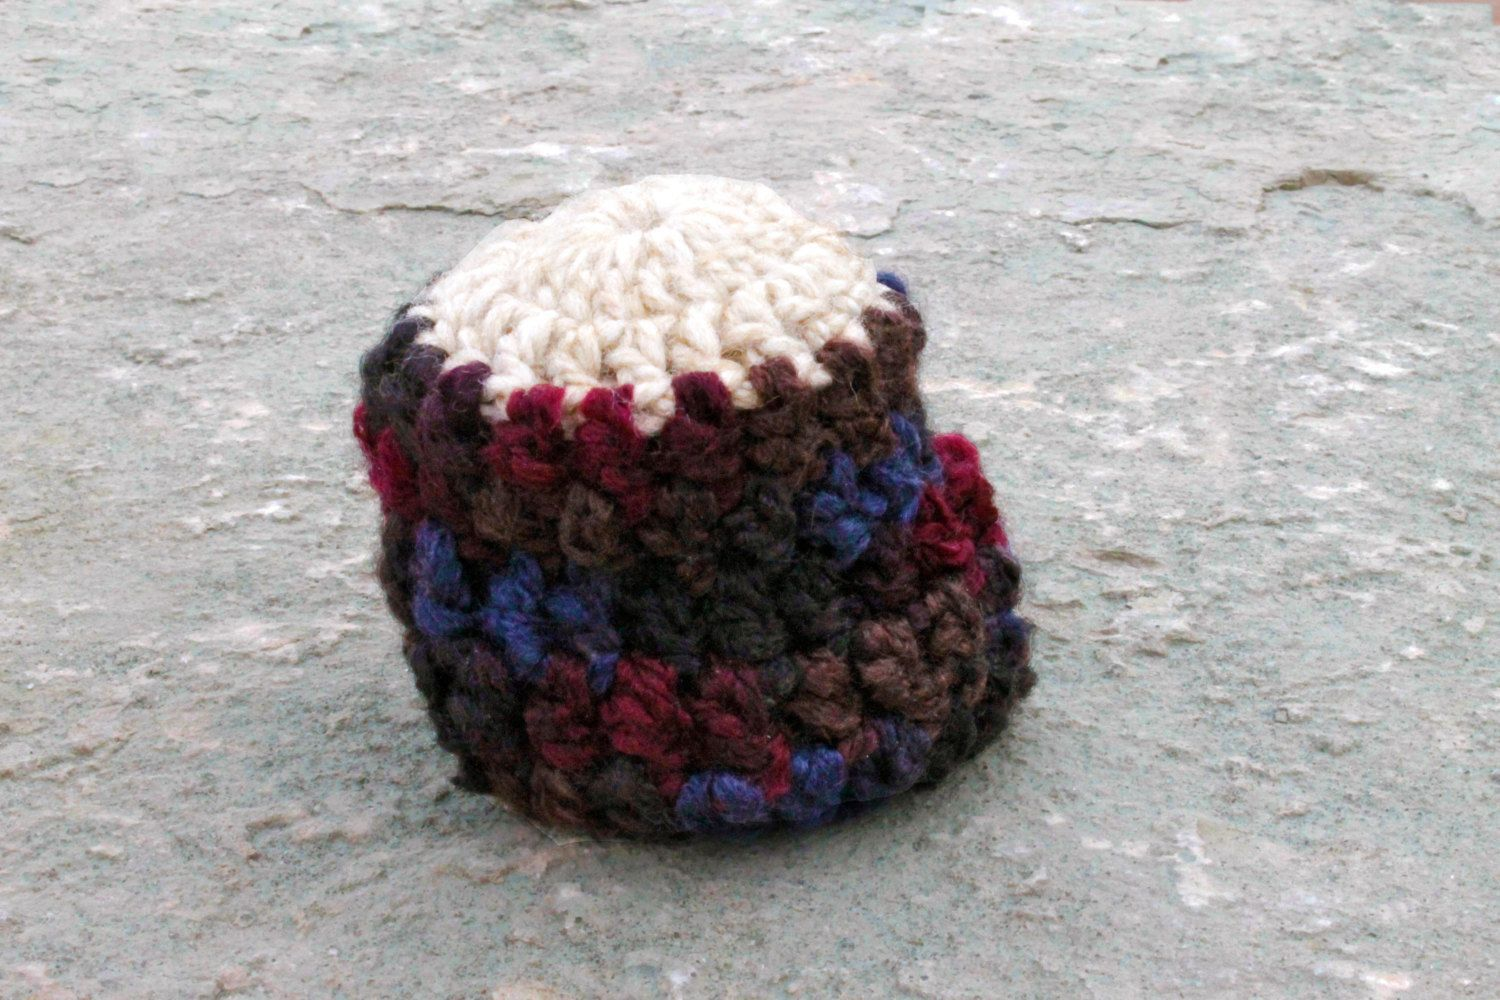 Camera Cozy- Crochet Camera Lens Cover. $15.00, via Etsy. #crochetcamera Camera Cozy- Crochet Camera Lens Cover. $15.00, via Etsy. #crochetcamera Camera Cozy- Crochet Camera Lens Cover. $15.00, via Etsy. #crochetcamera Camera Cozy- Crochet Camera Lens Cover. $15.00, via Etsy. #crochetcamera